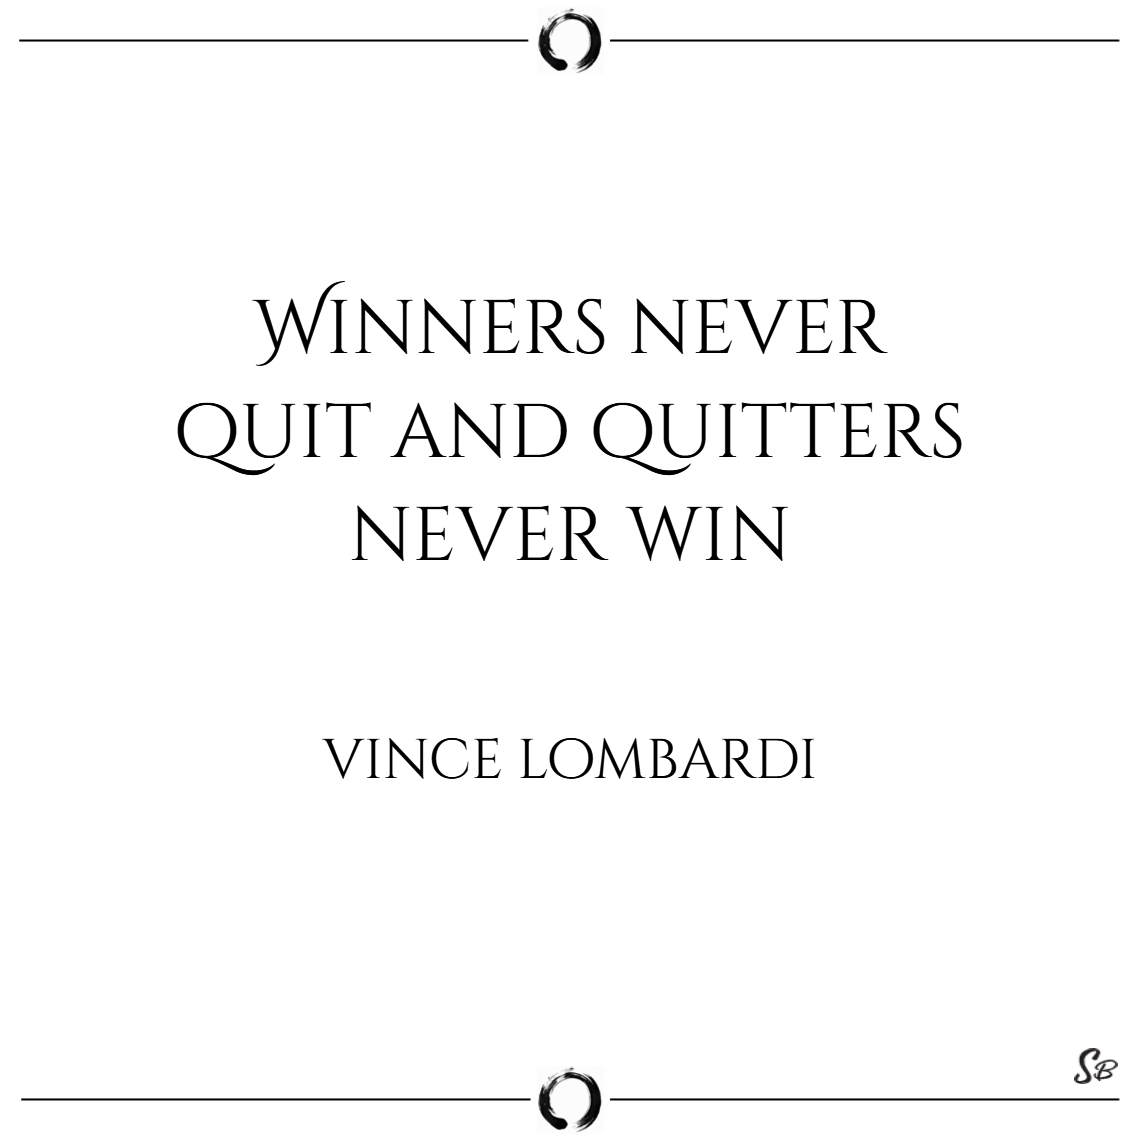 Winners never quit and quitters never win. – vince